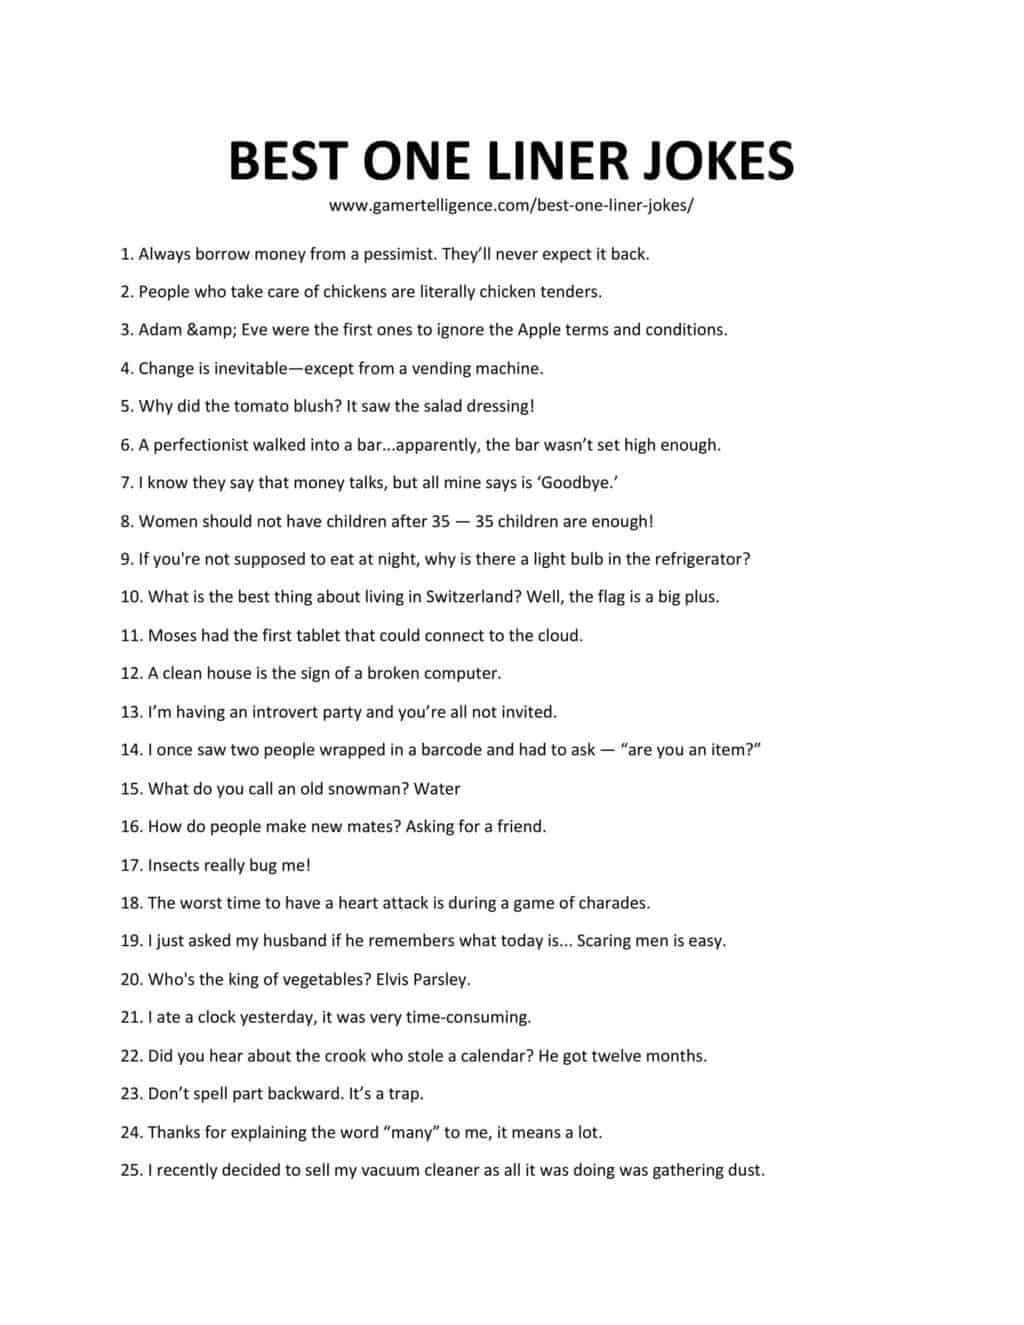 Downloadable and printable list of best one liner jokes as jpg or pdf